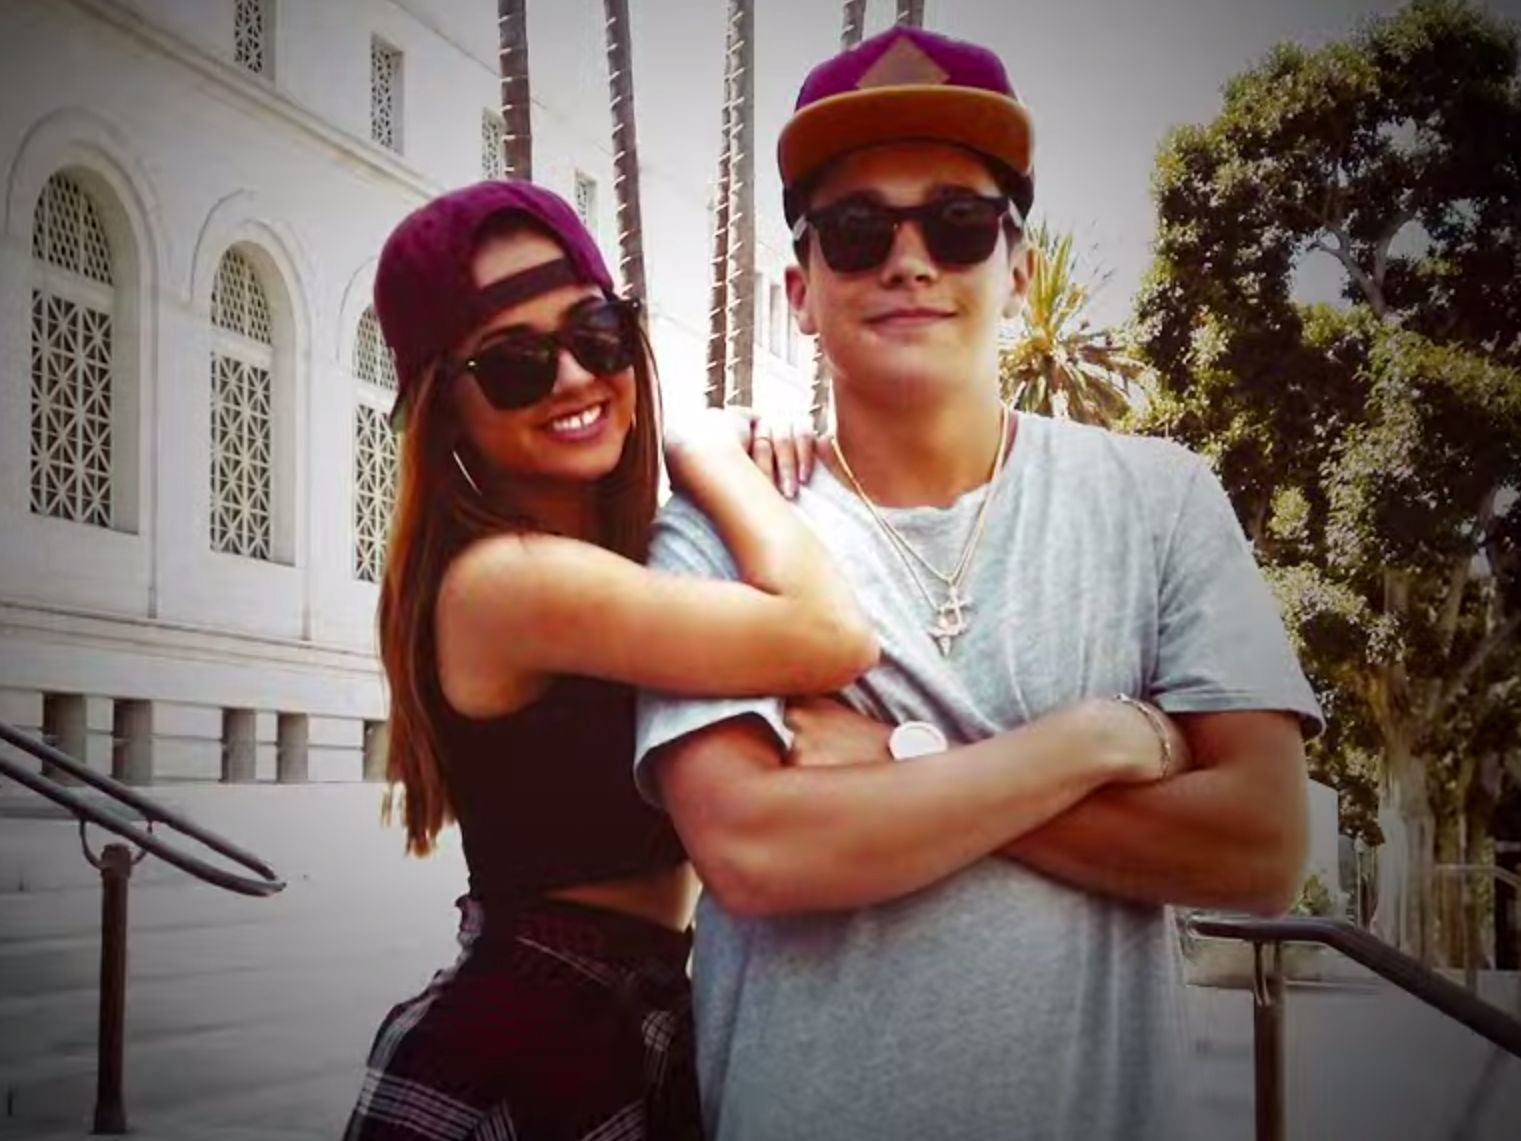 Whos dating austin mahone becky g